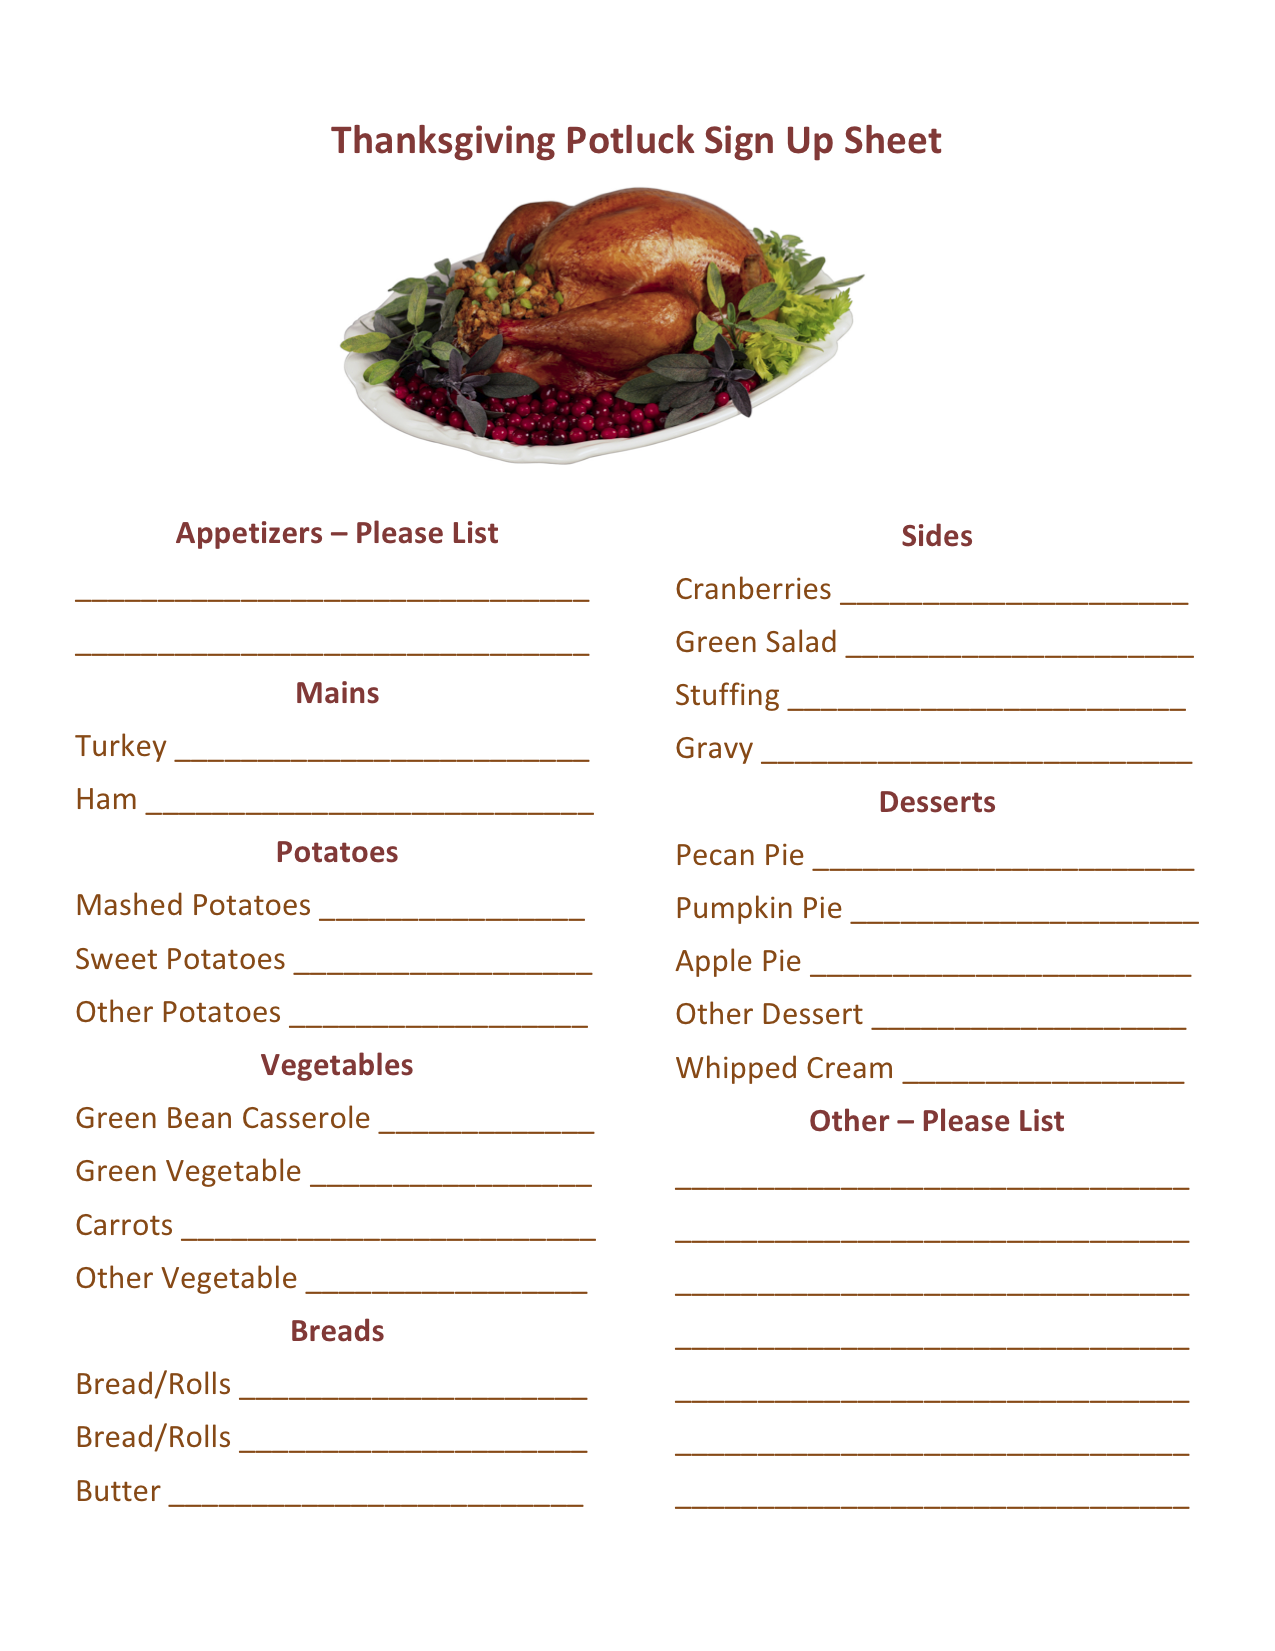 Thanksgiving Potluck Sign Up Printable Thanksgiving Pinterest